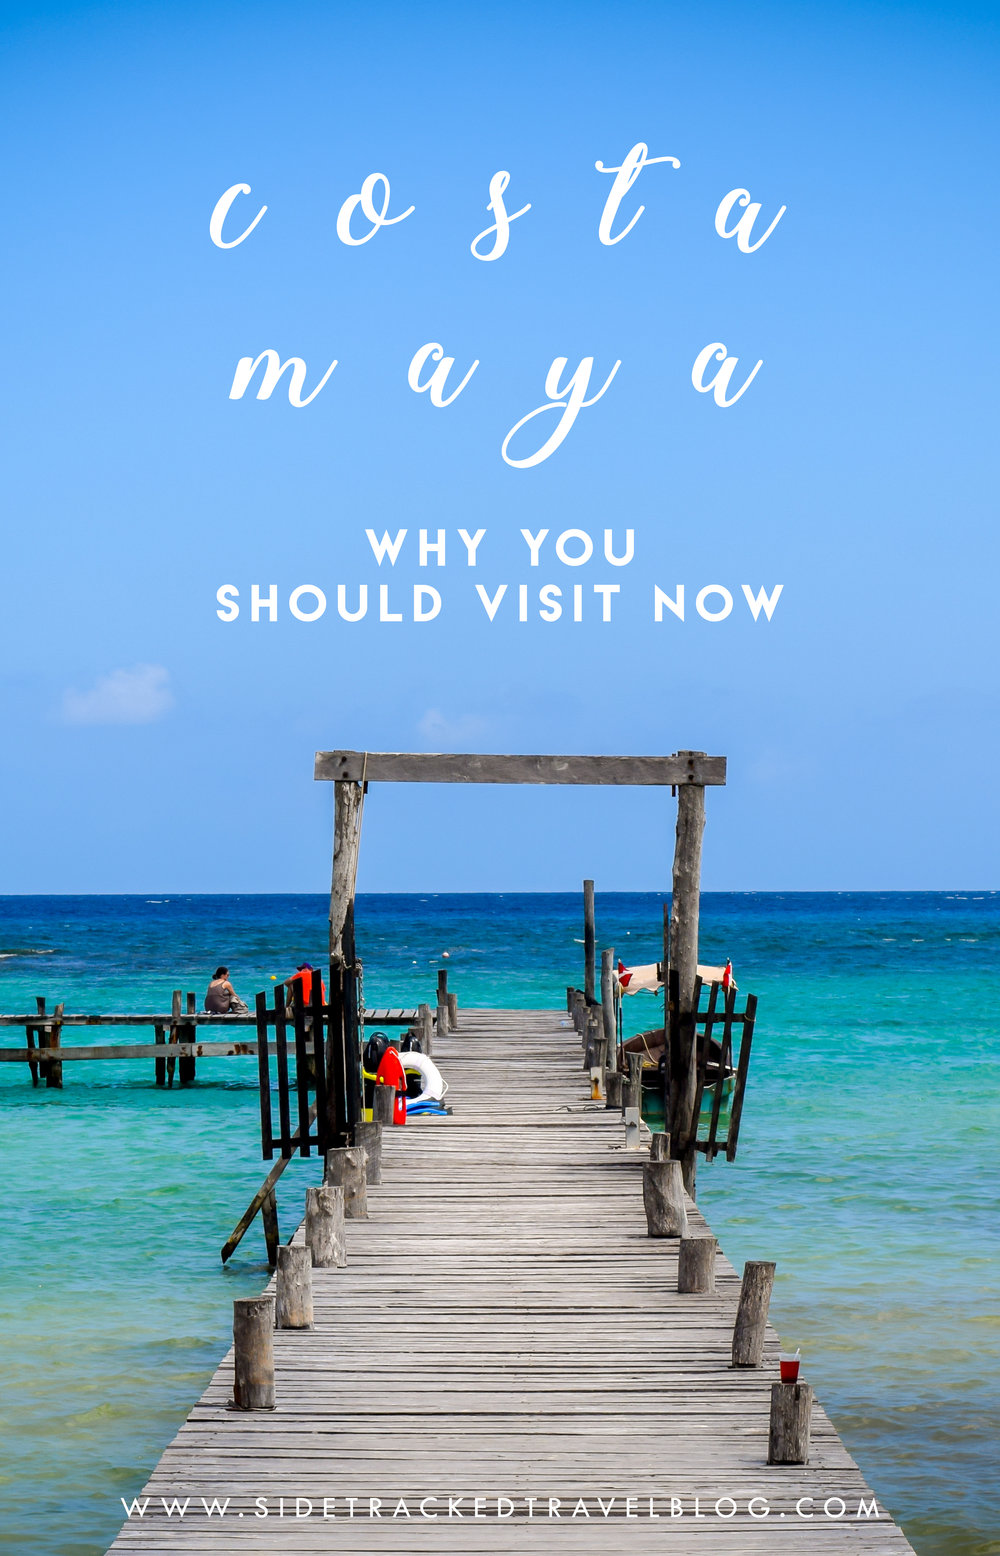 Mexico-bound travelers who are looking to get off the well-beaten gringo path only need to head a few hours south of Cancun to Costa Maya, a less developed area that is slowly blossoming into the Yucatan's new vacation hot spot. But it won't last forever. Here are some reasons why you should visit Costa Maya now, as well as some important information for making the most of your visit.